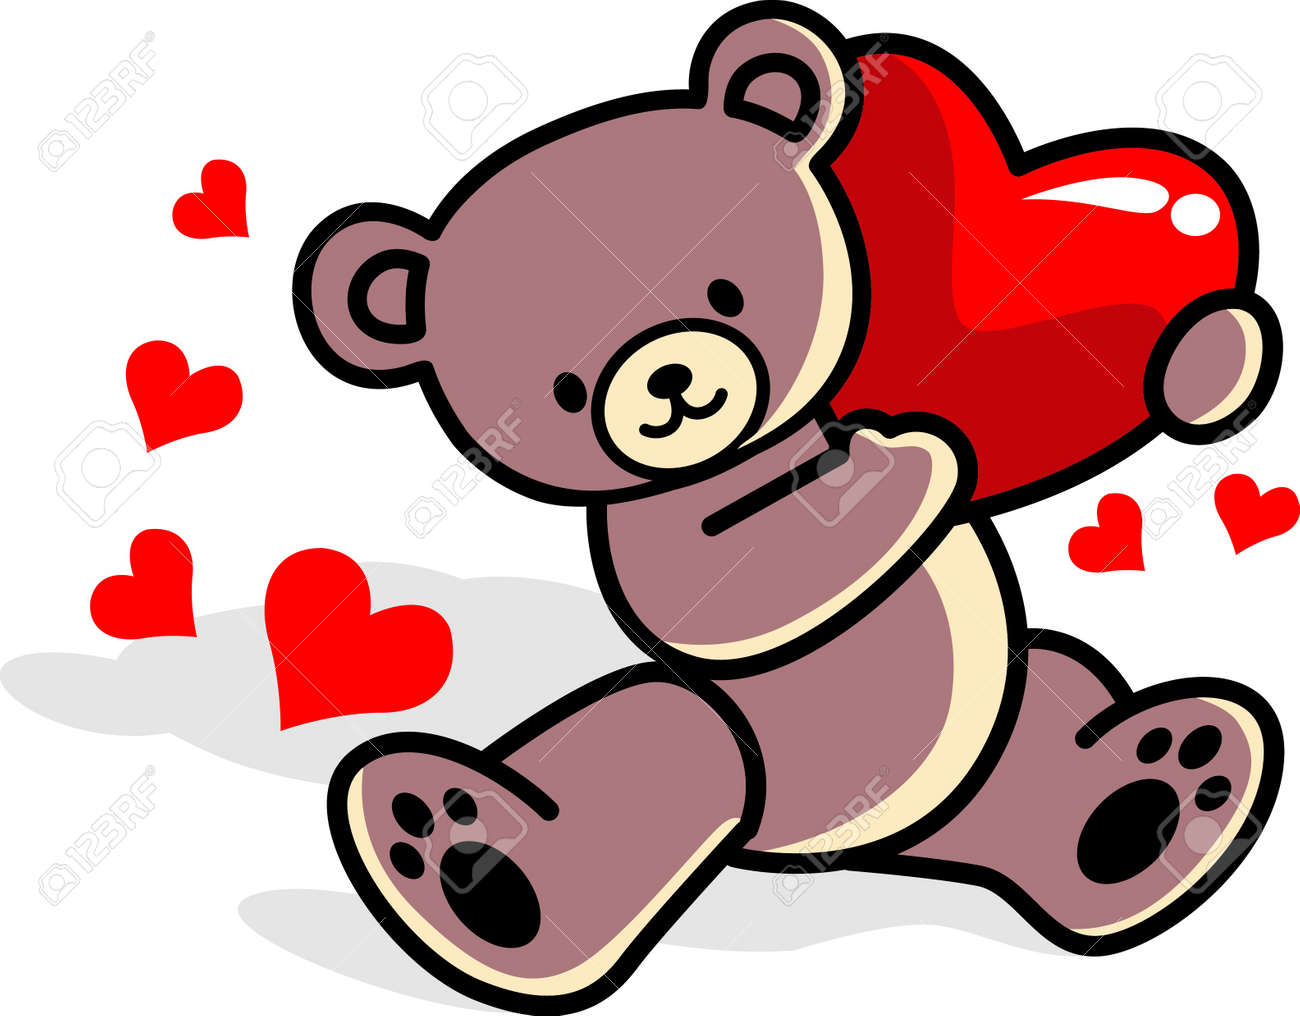 teddy bear with love royalty free cliparts vectors and stock